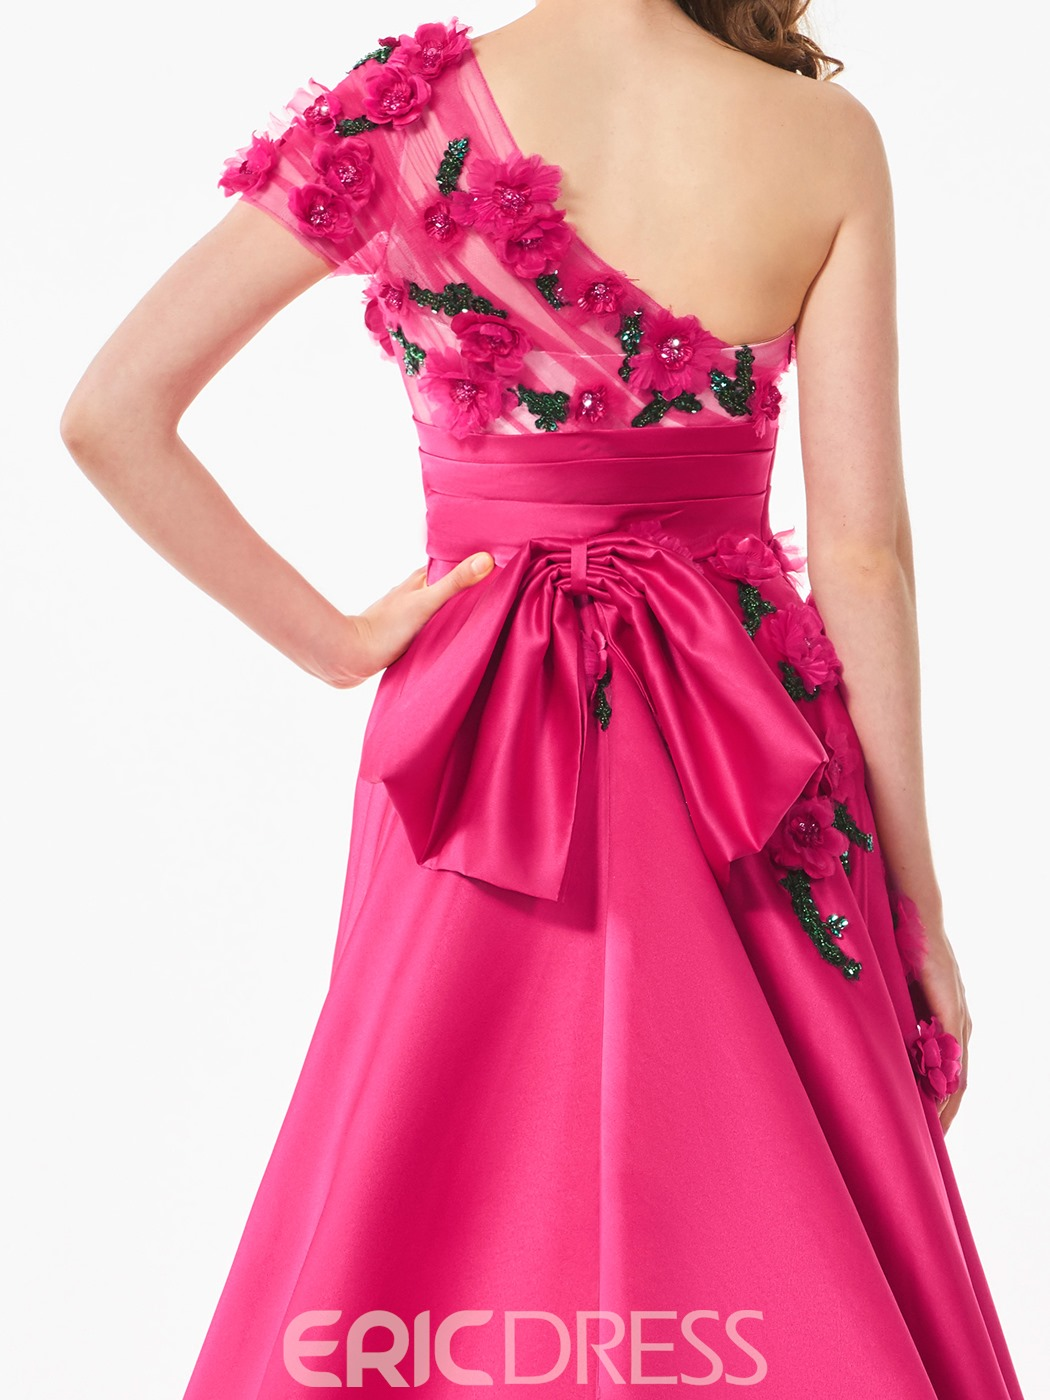 Ericdress A Line One Shoulder Beaded Flower Long Prom Dress